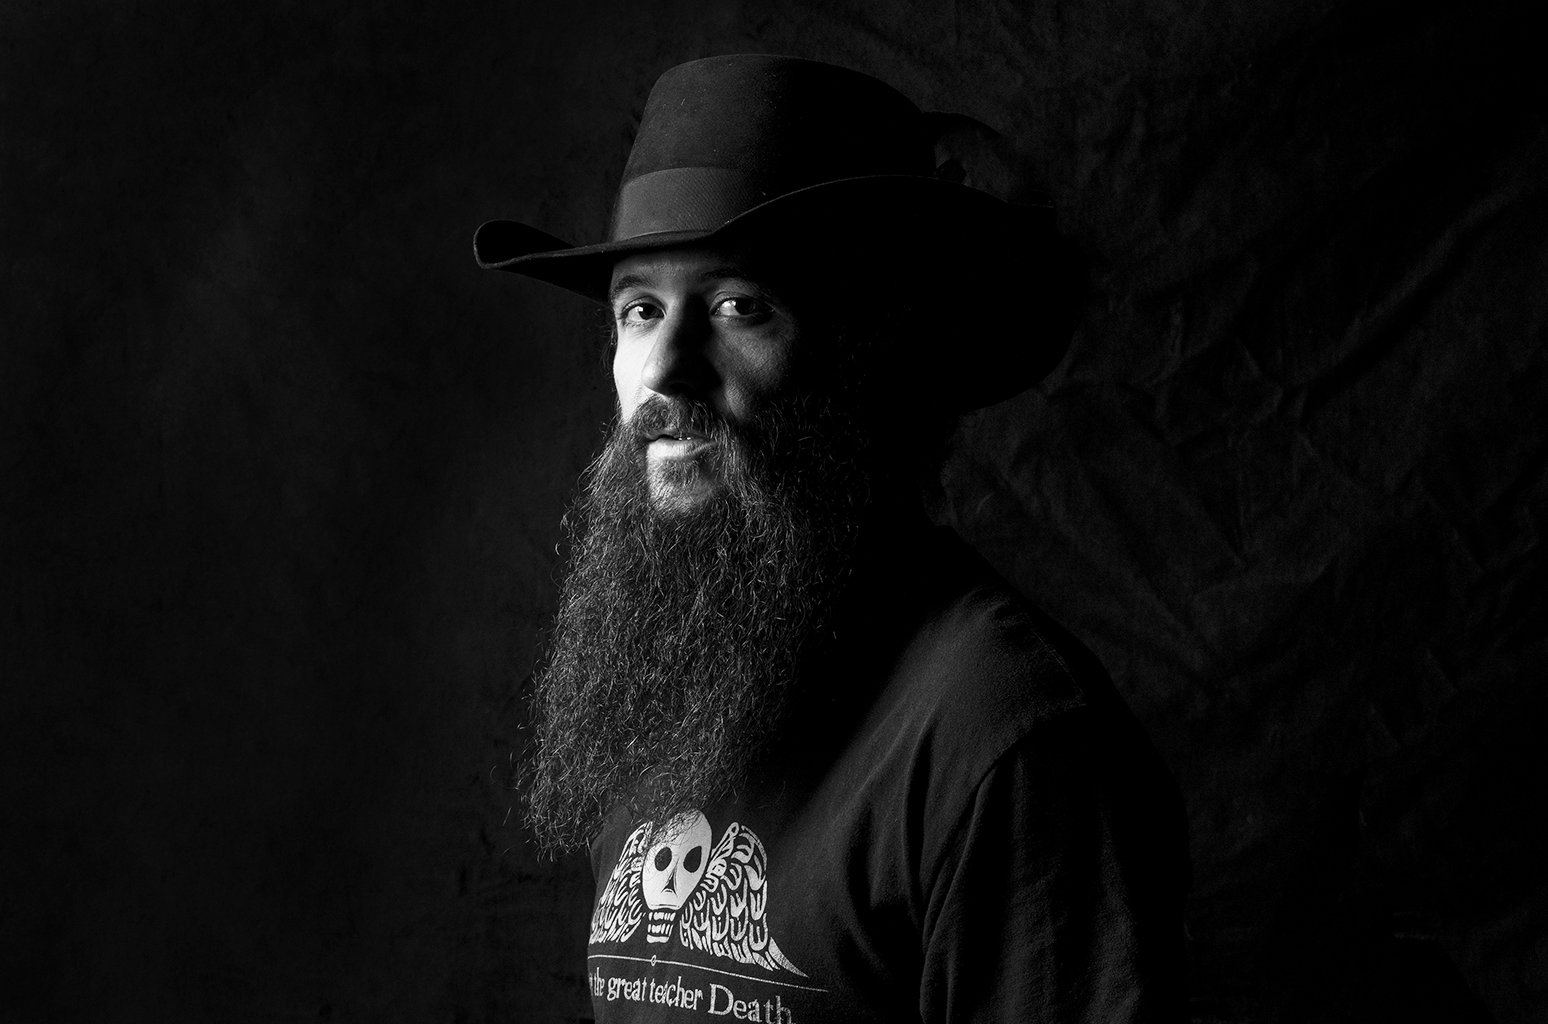 De 25 van 2016: 7 Cody Jinks – I'm Not The Devil